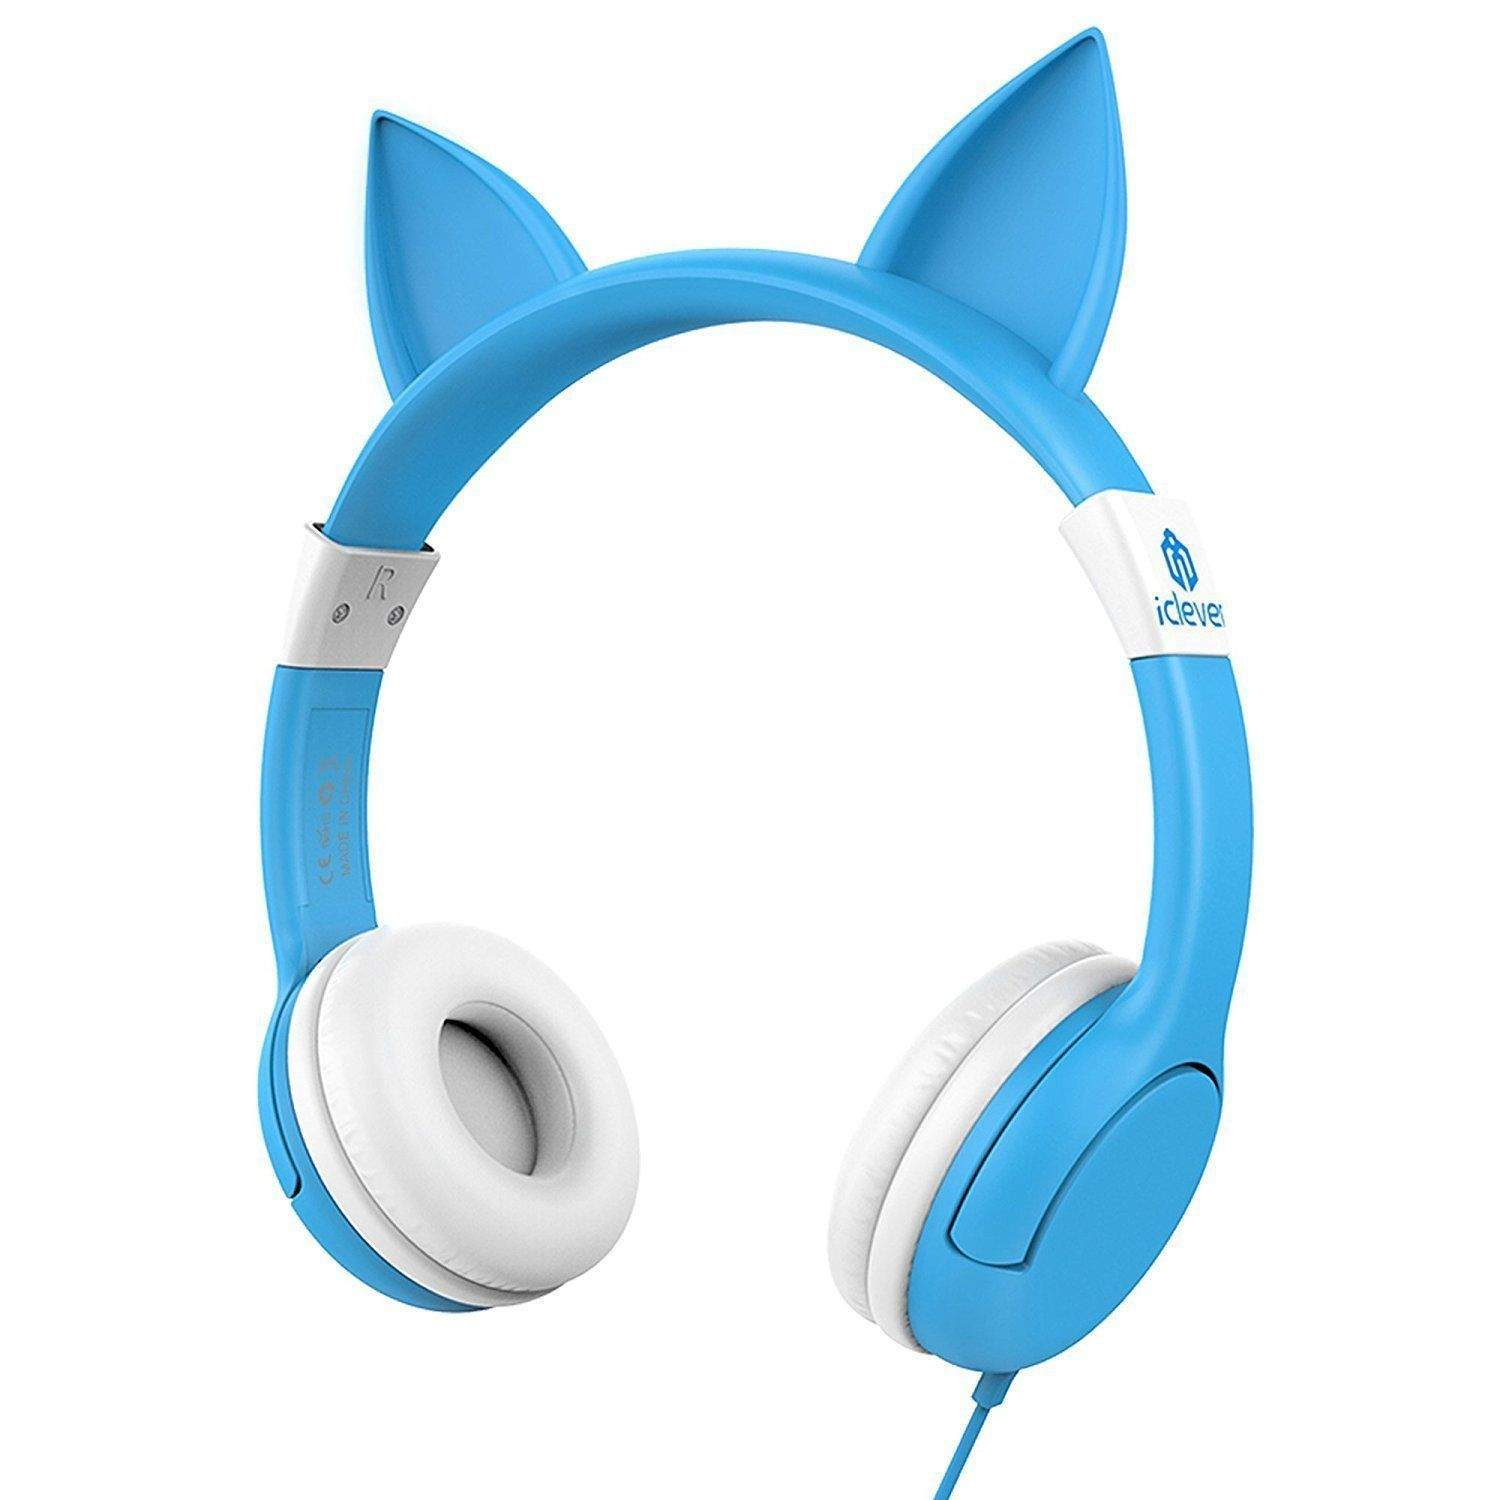 iClever BoostCare Wired Kids Cat Ear Headphones (Blue)